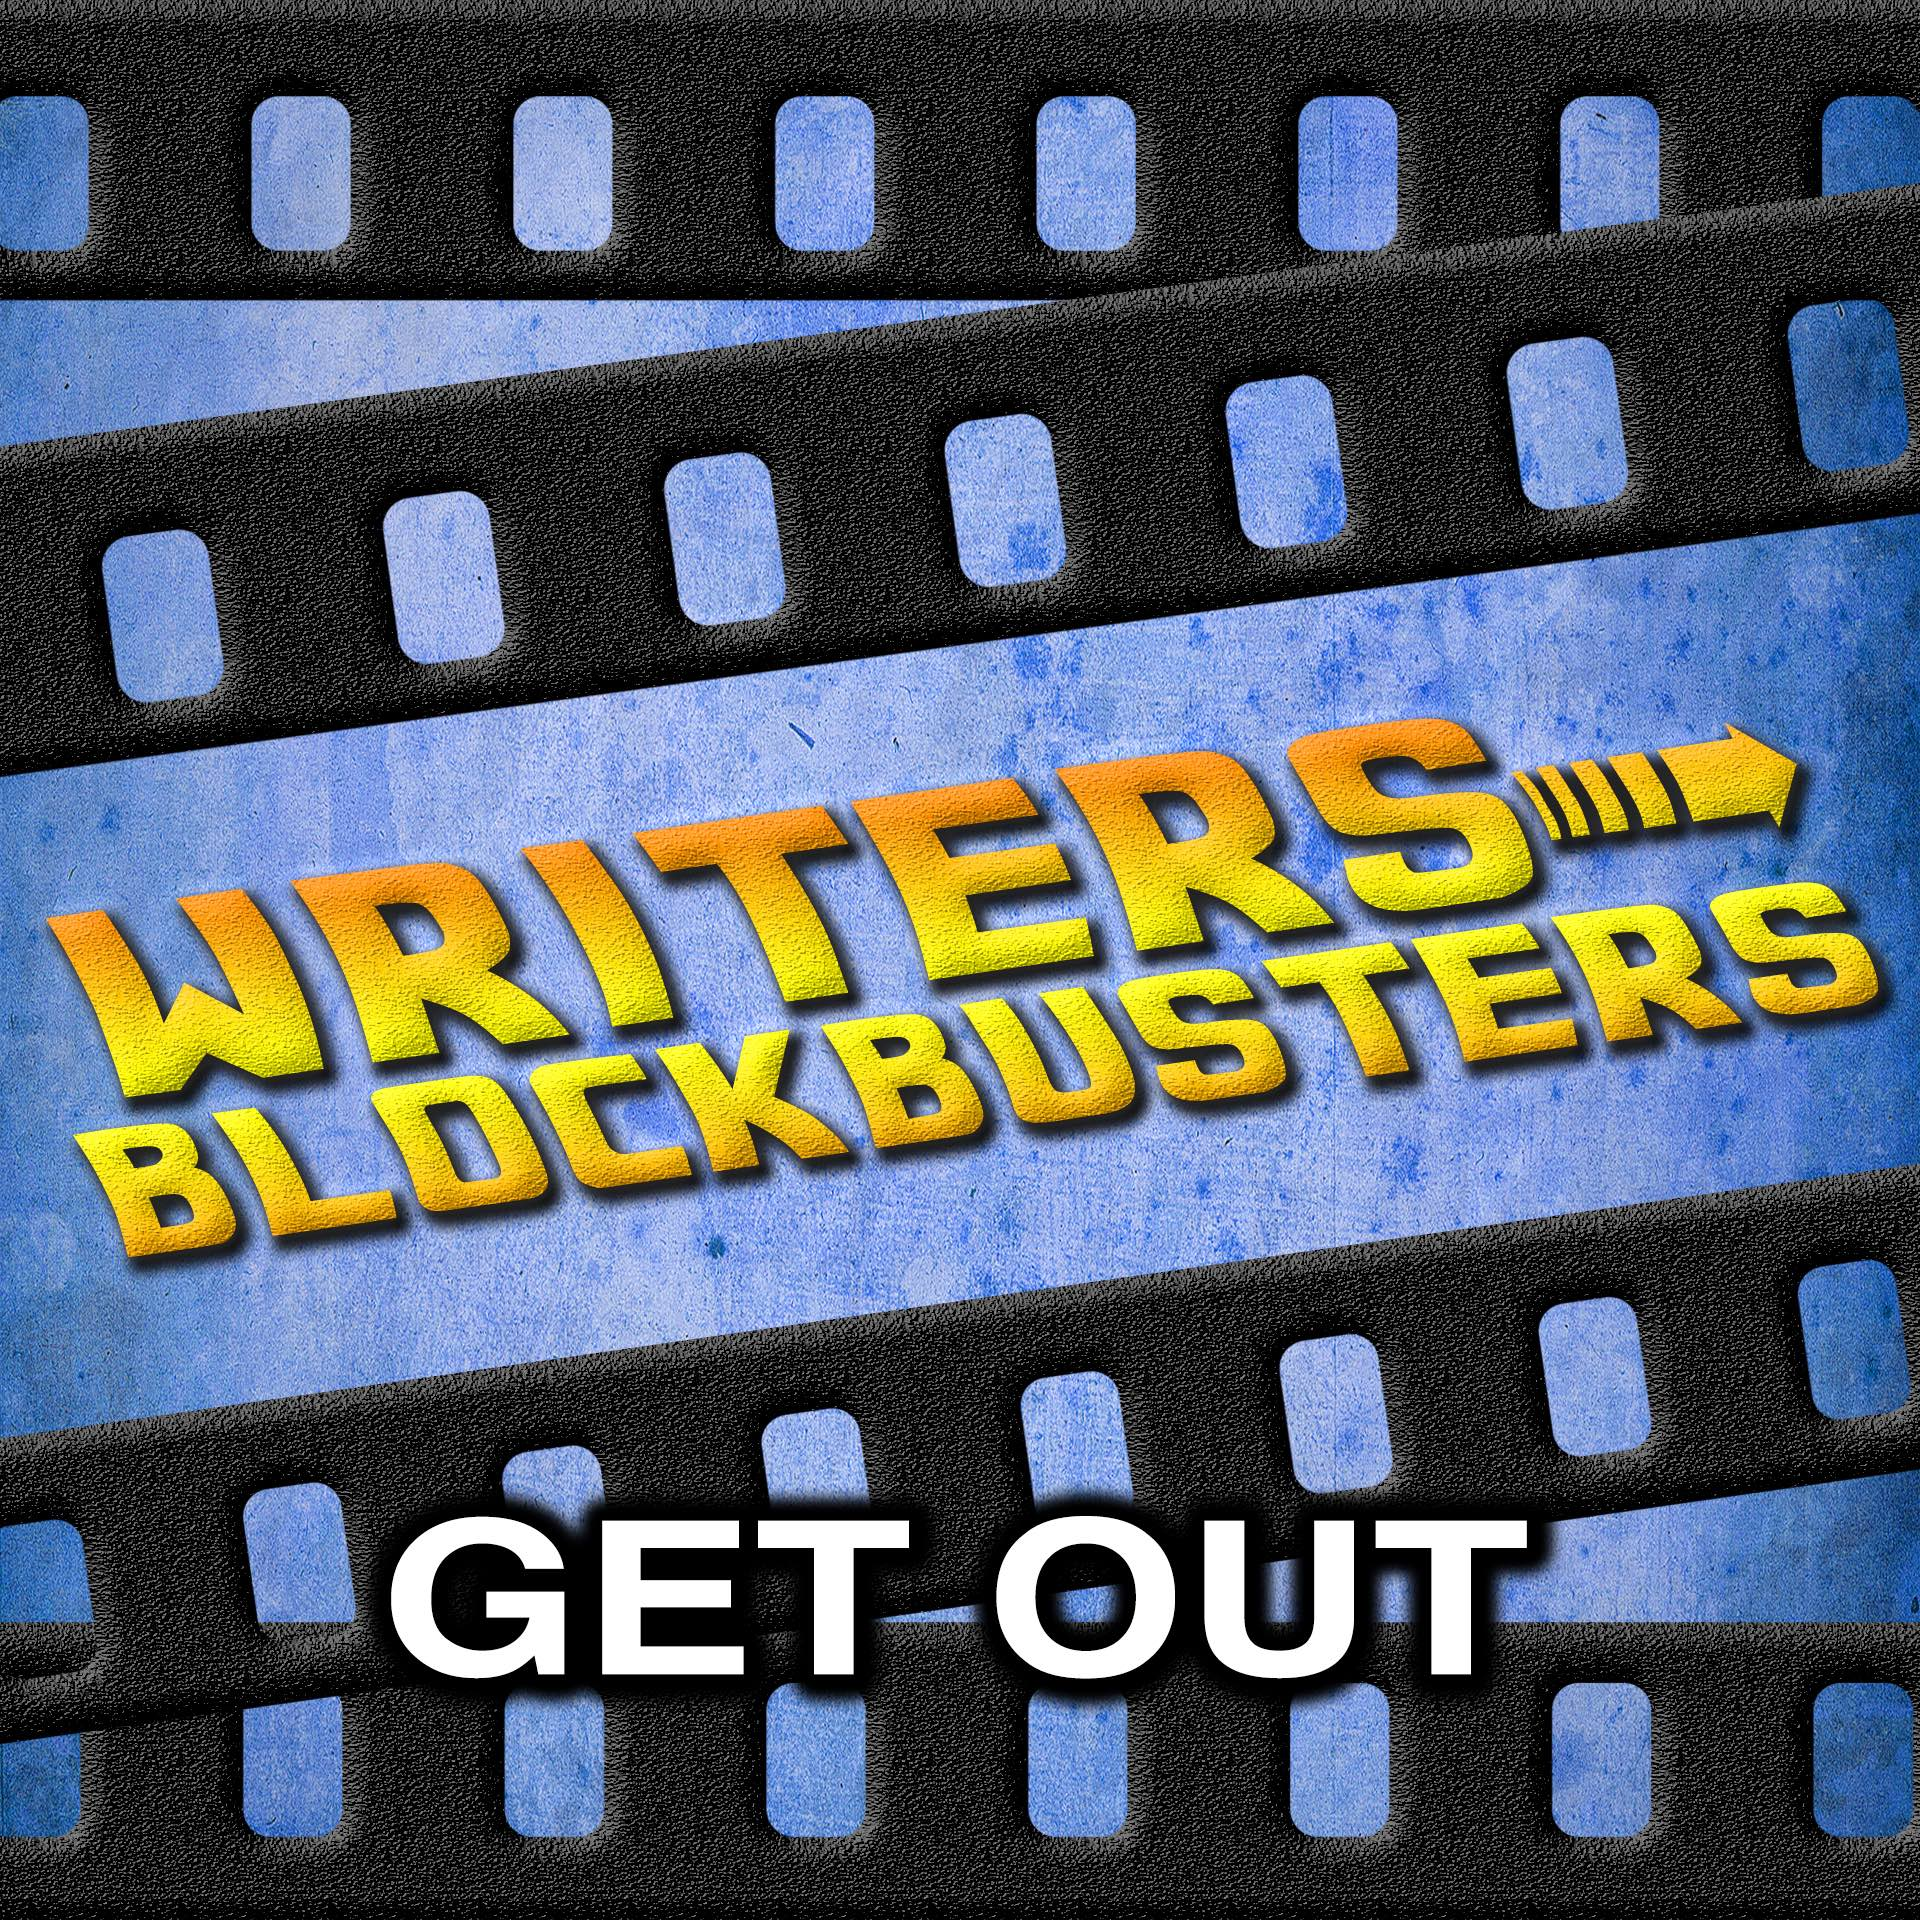 WRITERS/BLOCKBUSTERS 001 | GET OUT